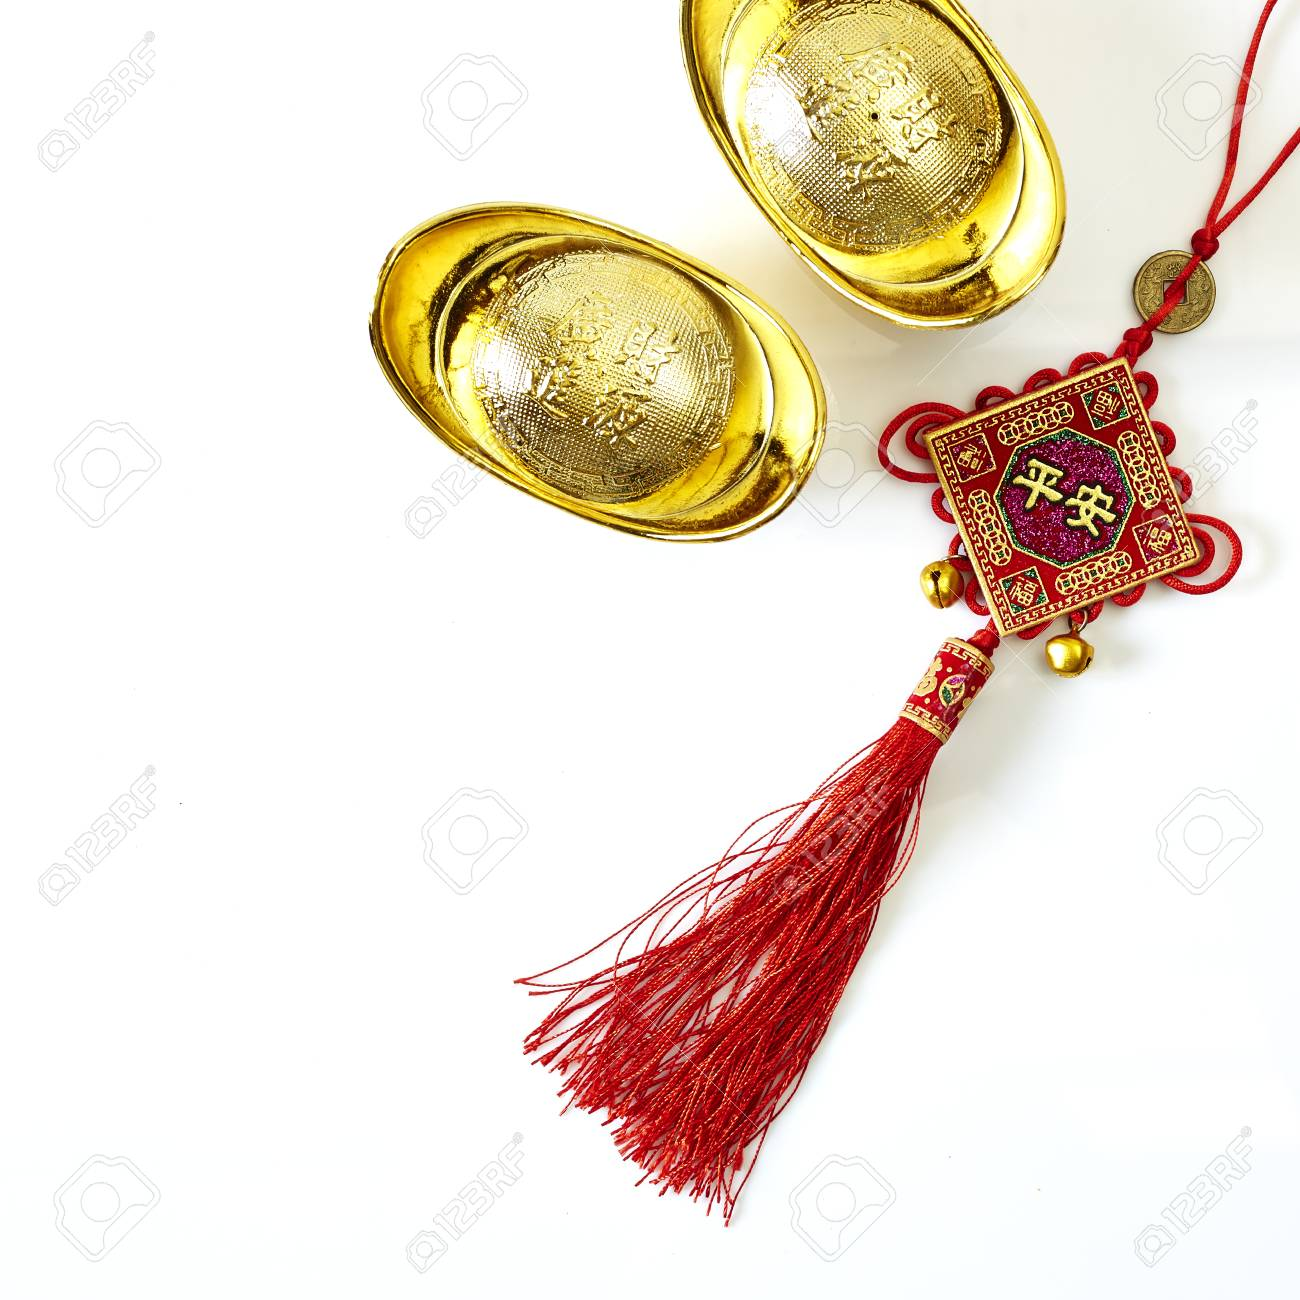 Chinese New Year is something sacred amulets to bring good luck to Him - 69771646